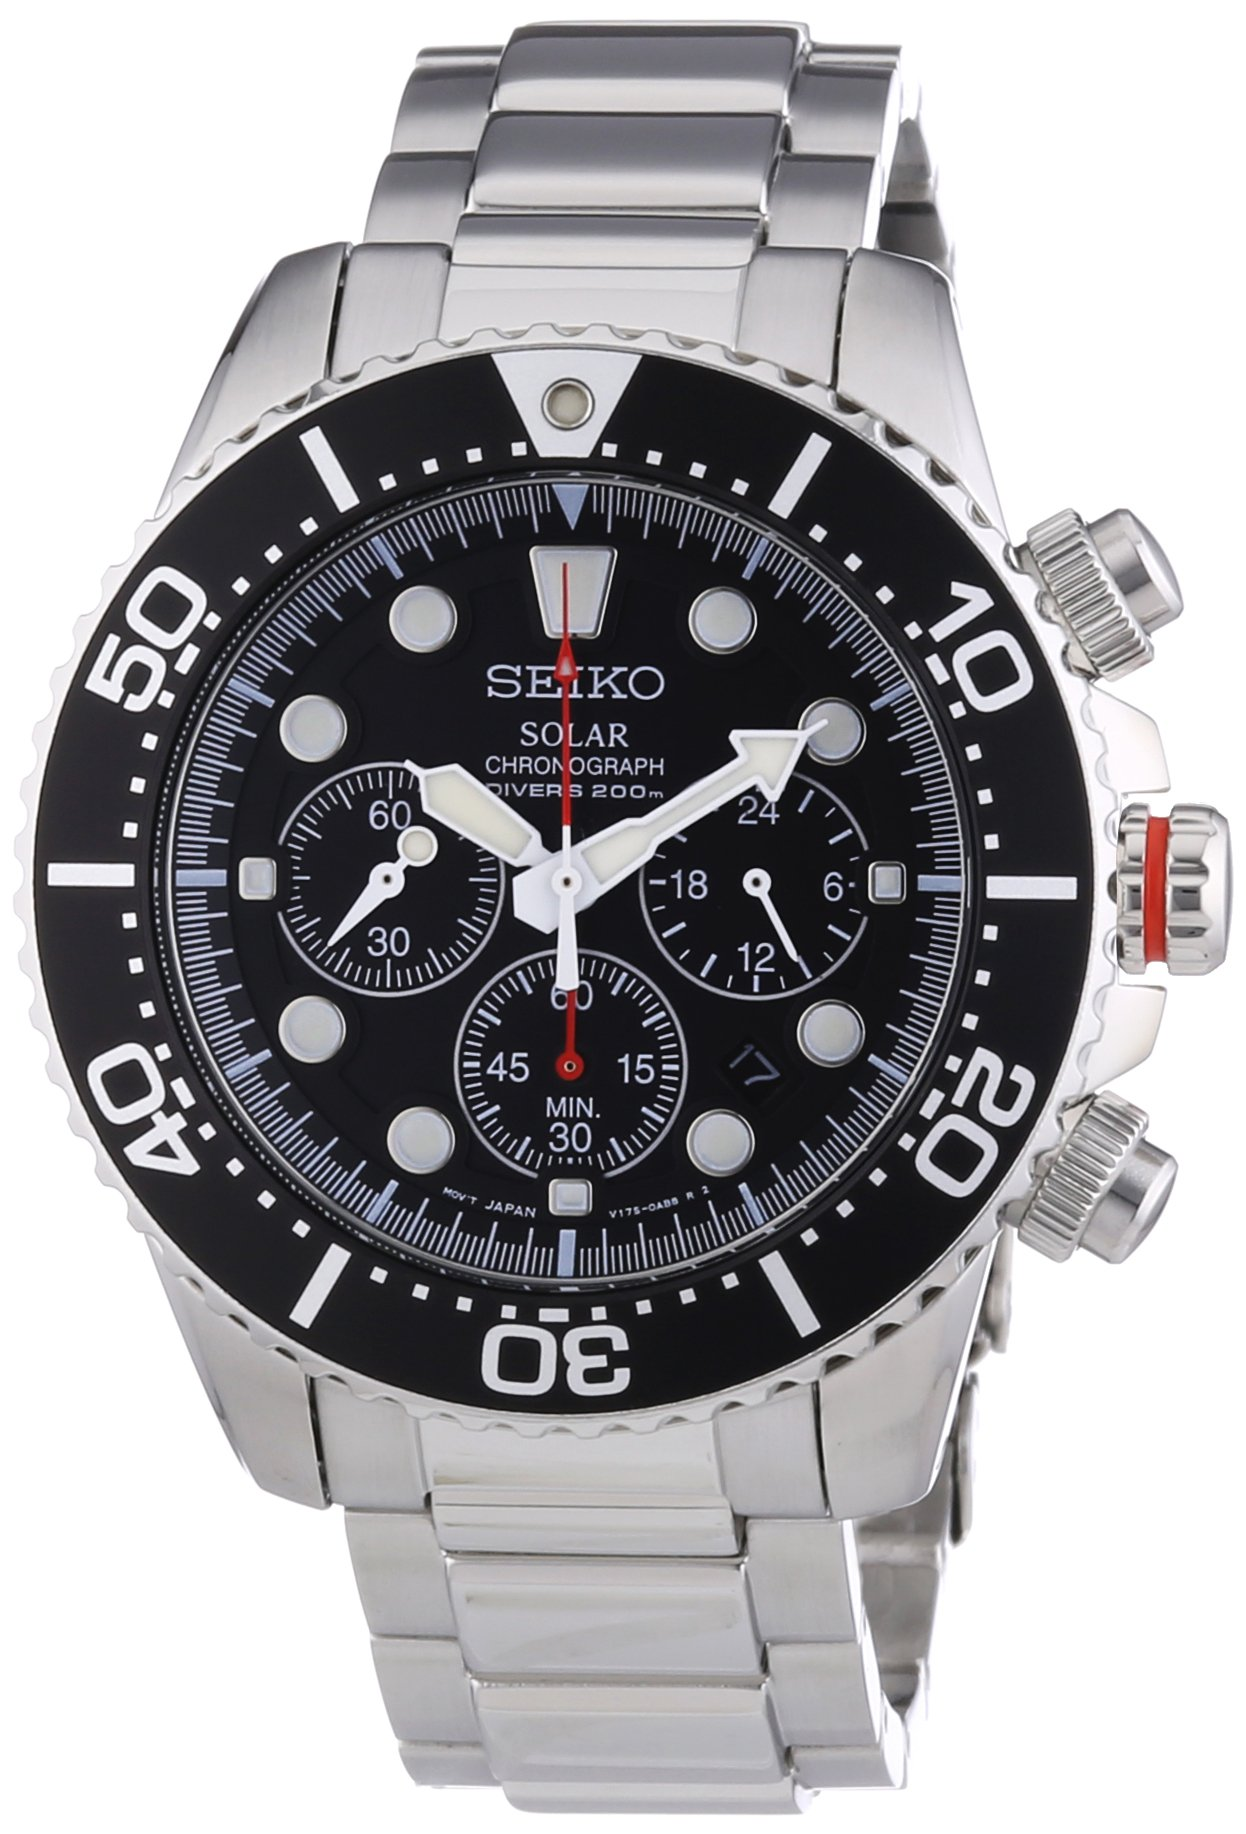 Seiko Men's SSC015P1 Chronograph Solar Power Stainless Steel Watch by Seiko